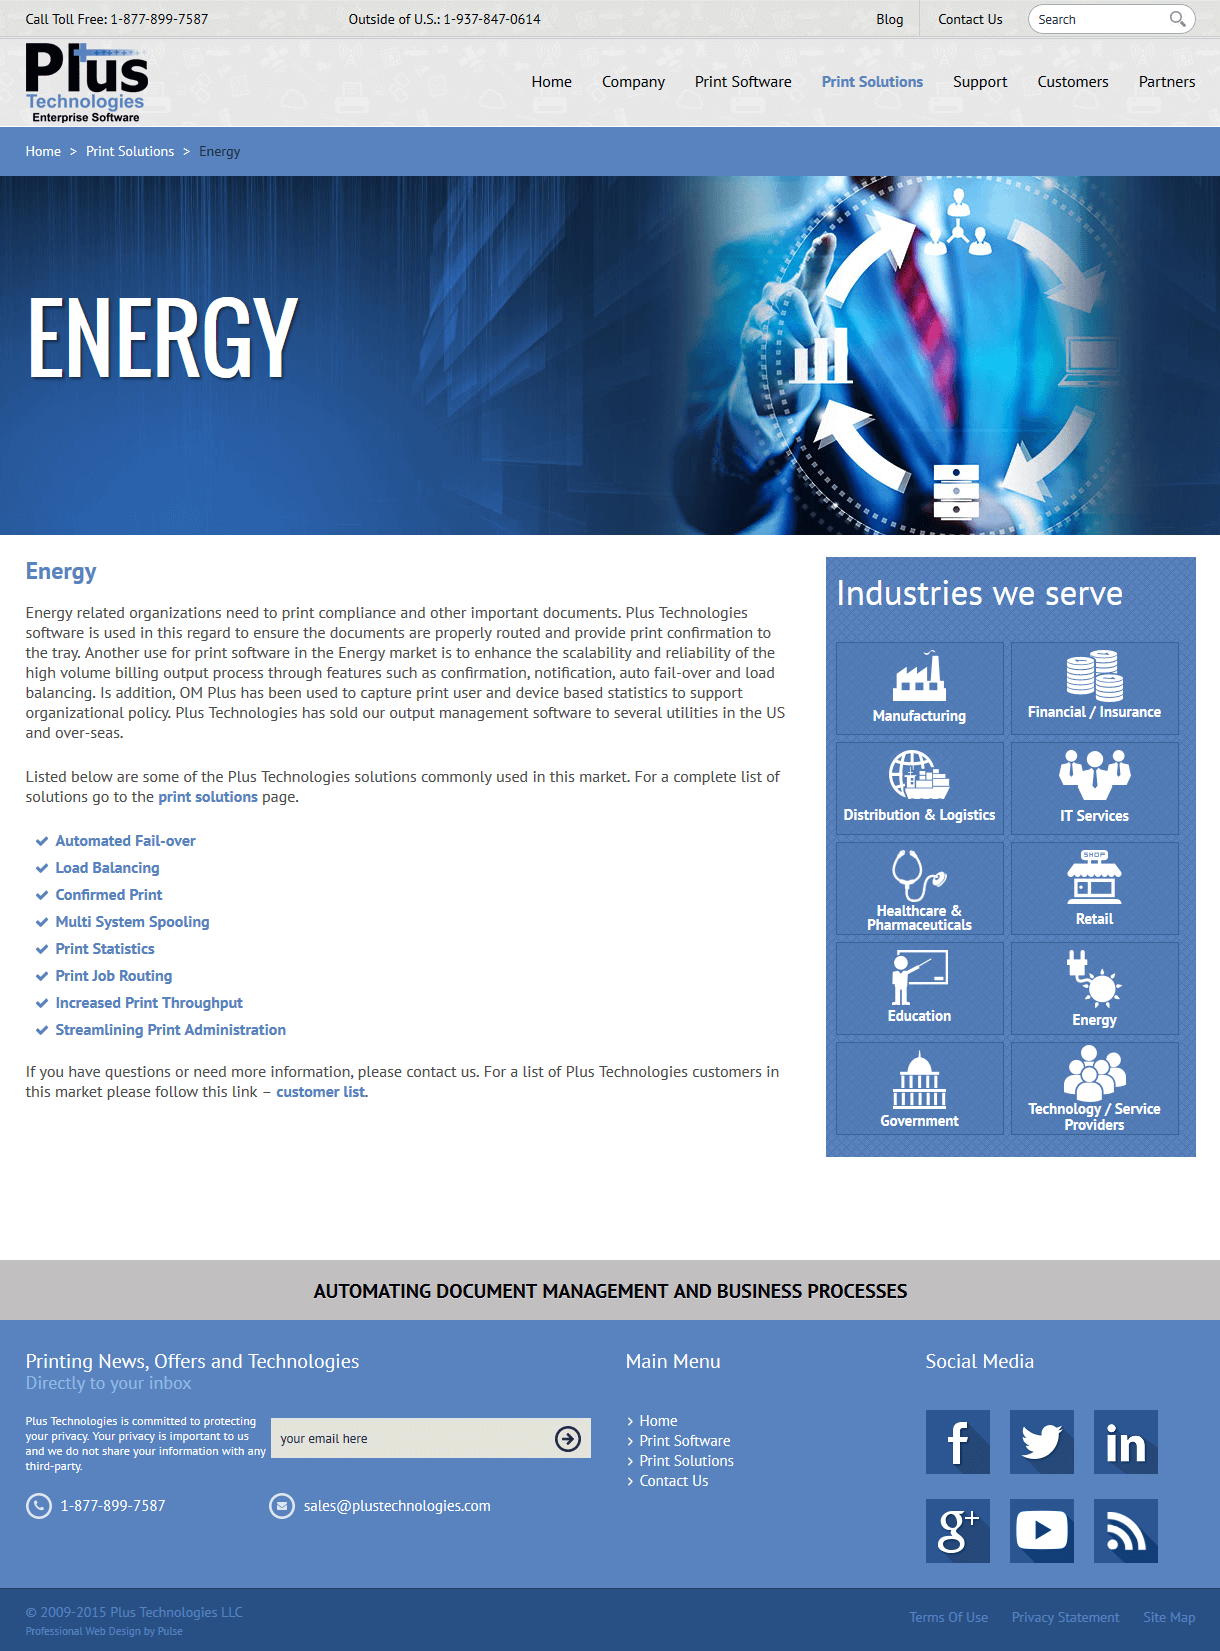 Print Software in Energy Market